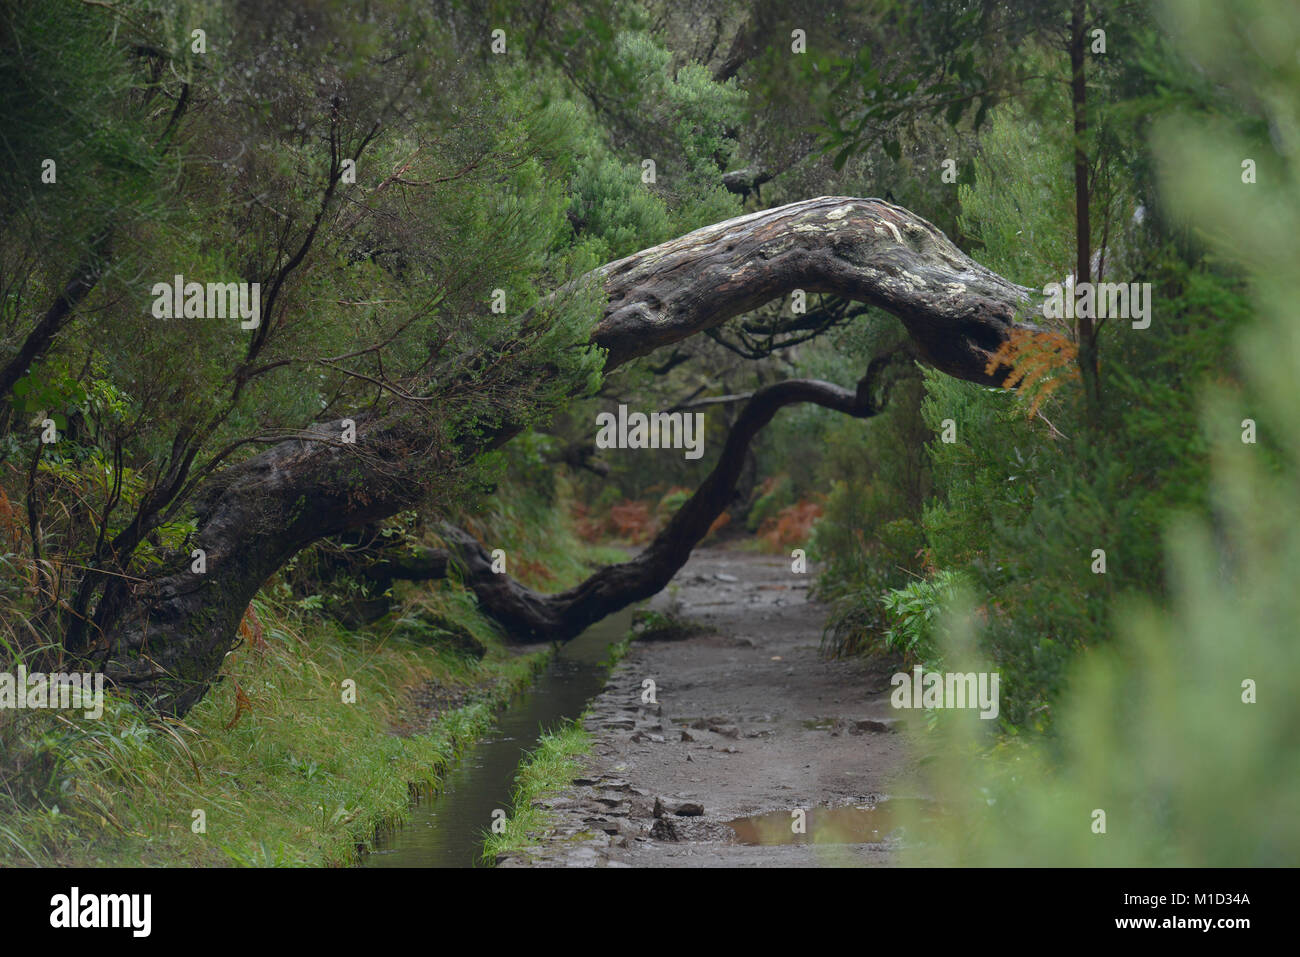 Hiking Trail, Rabacal-Tal, Central Mountains, Madeira, Portugal, Wanderweg, Zentralgebirge - Stock Image